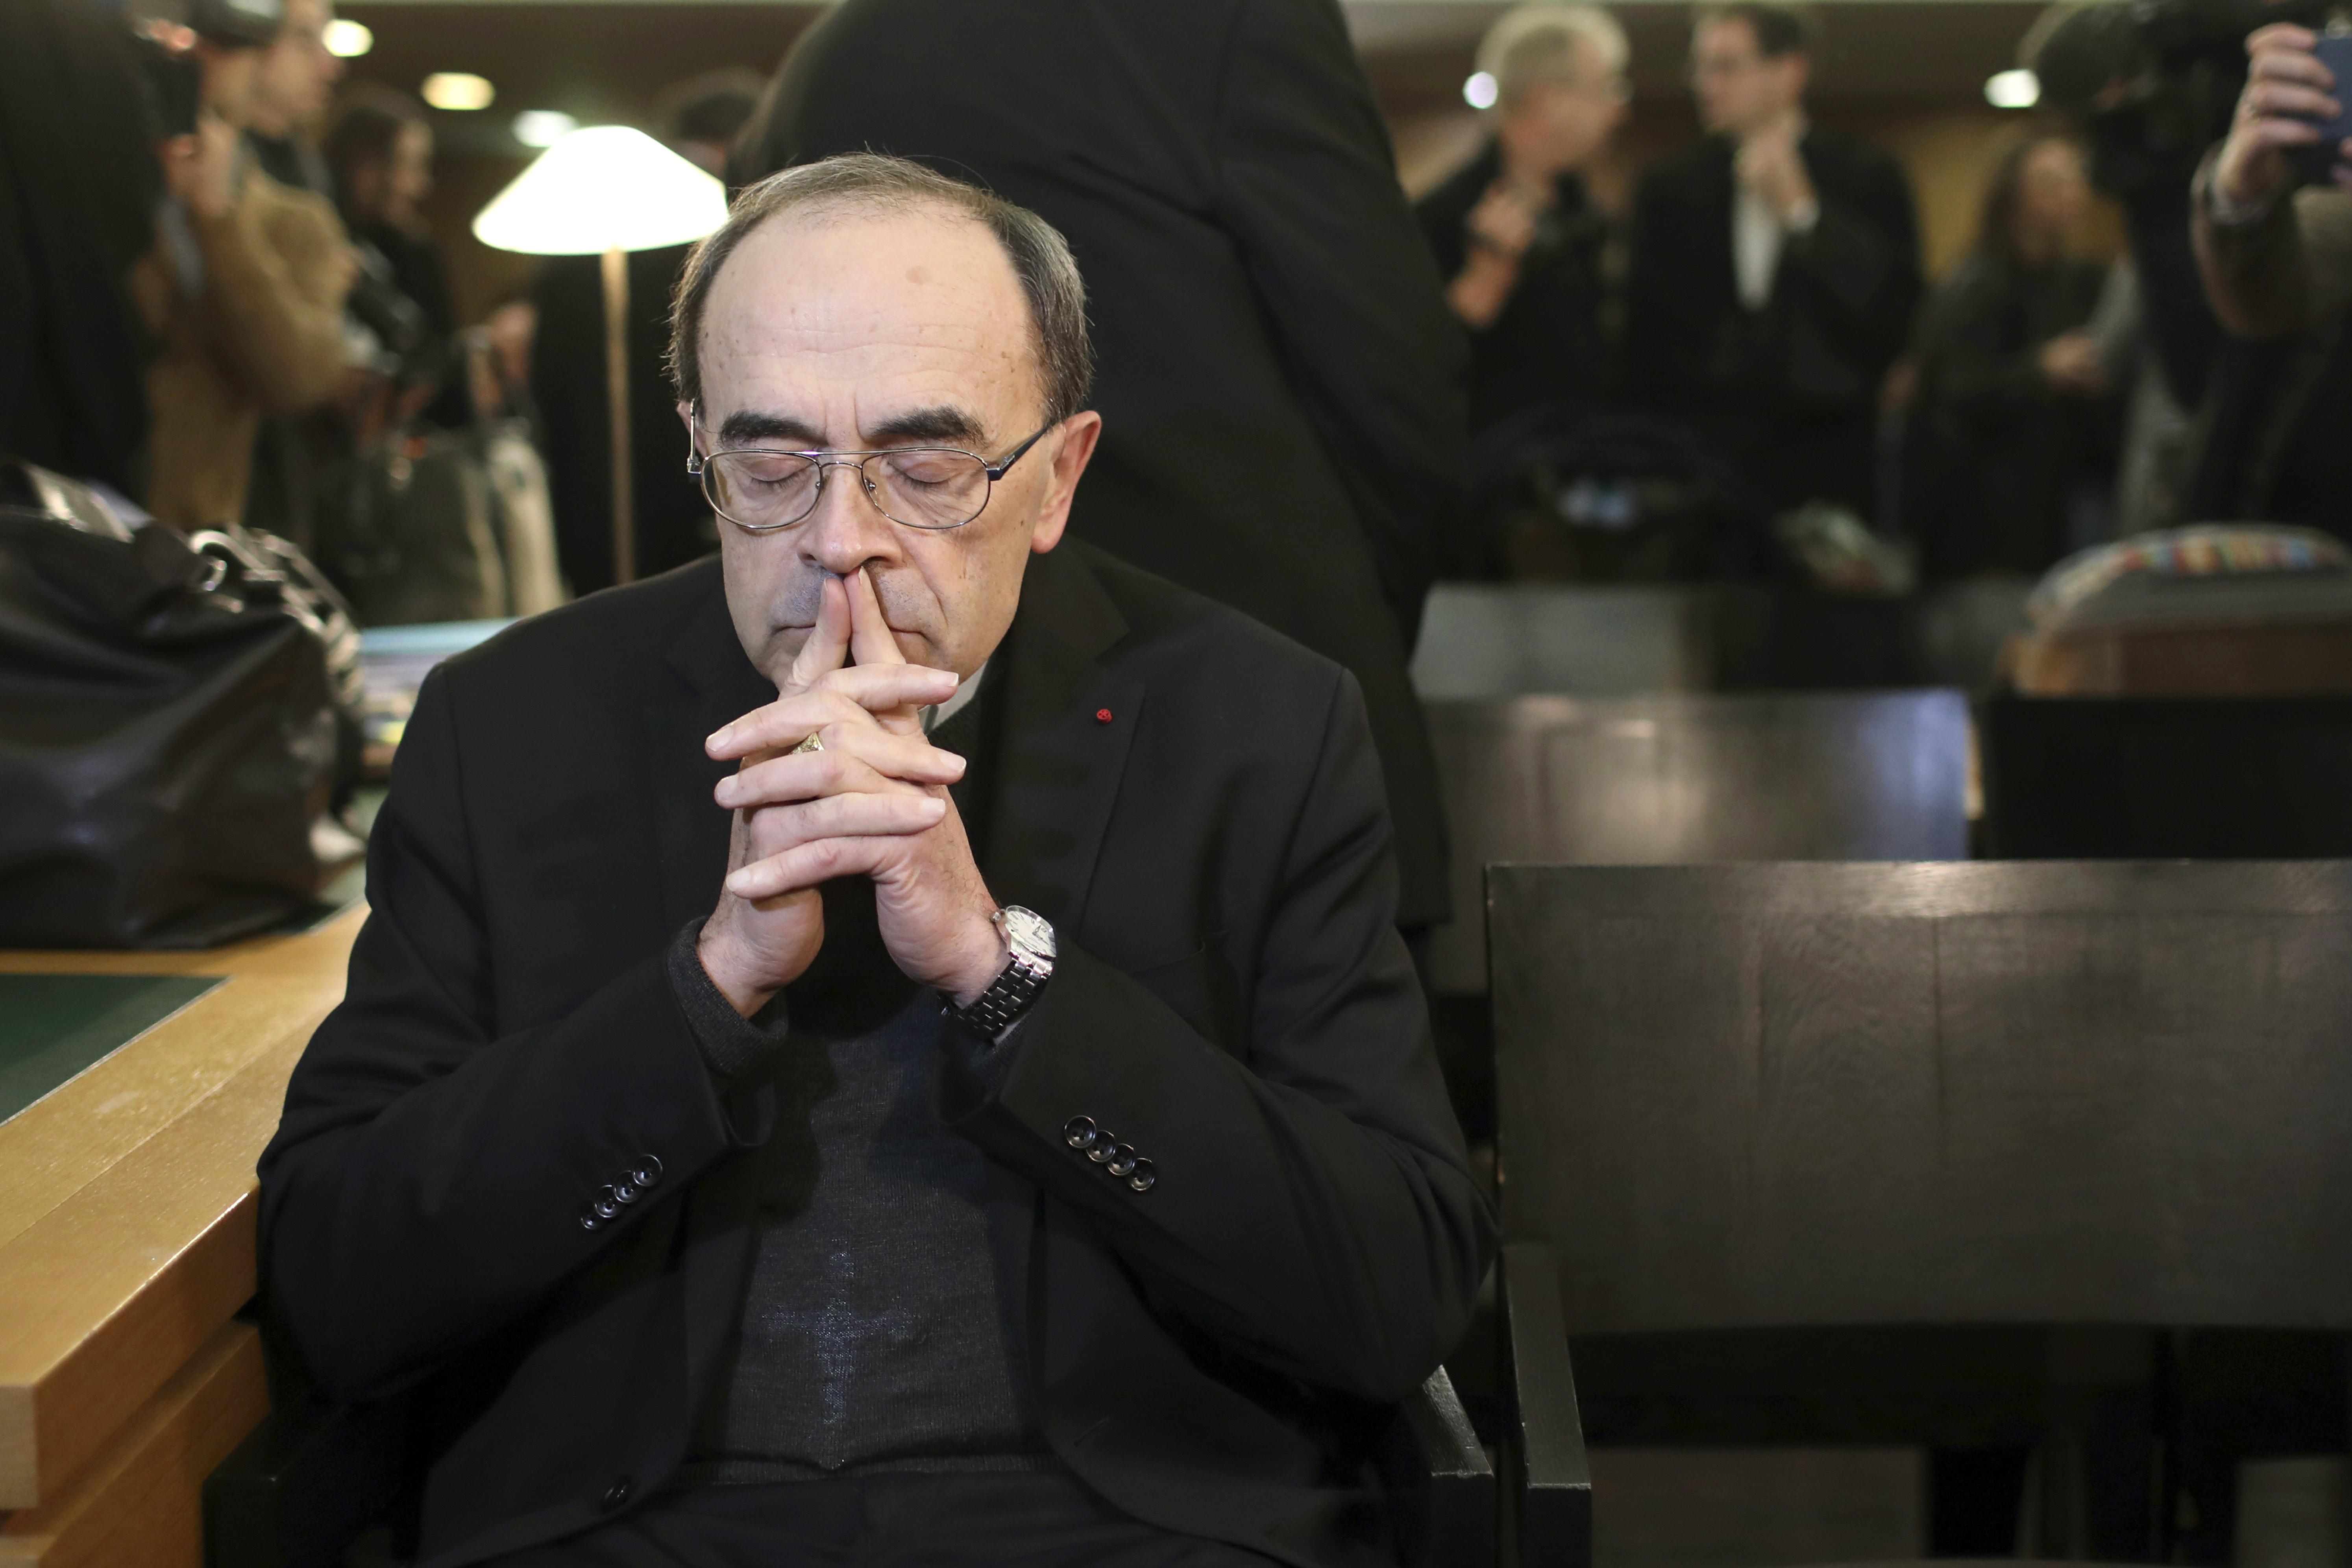 FILE - In this Jan. 7, 2019 file photo, French Cardinal Philippe Barbarin waits for the start of his trial at the Lyon courthouse, central France. Pope Francis' high-stakes sex abuse prevention summit is meant to call attention to the crisis as a global problem that requires a global response. One of France's most prominent cardinals, Philippe Barbarin, went on trial earlier this year on charges he covered up for a known pedophile. (AP Photo/Laurent Cipriani, File)